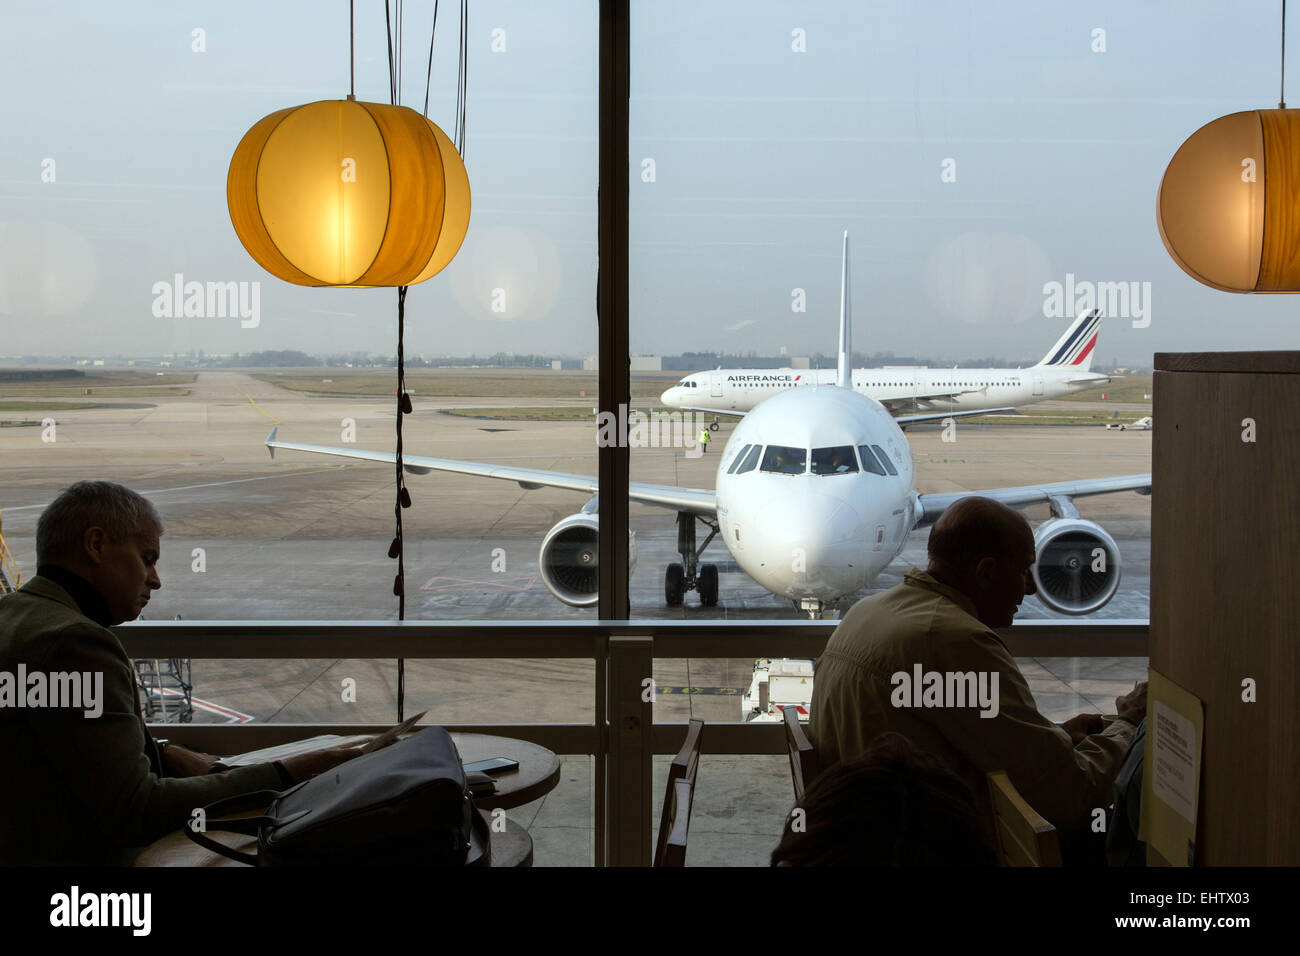 AEROPORT D'ORLY, (94) VAL-DE-MARNE, FRANCE Stock Photo